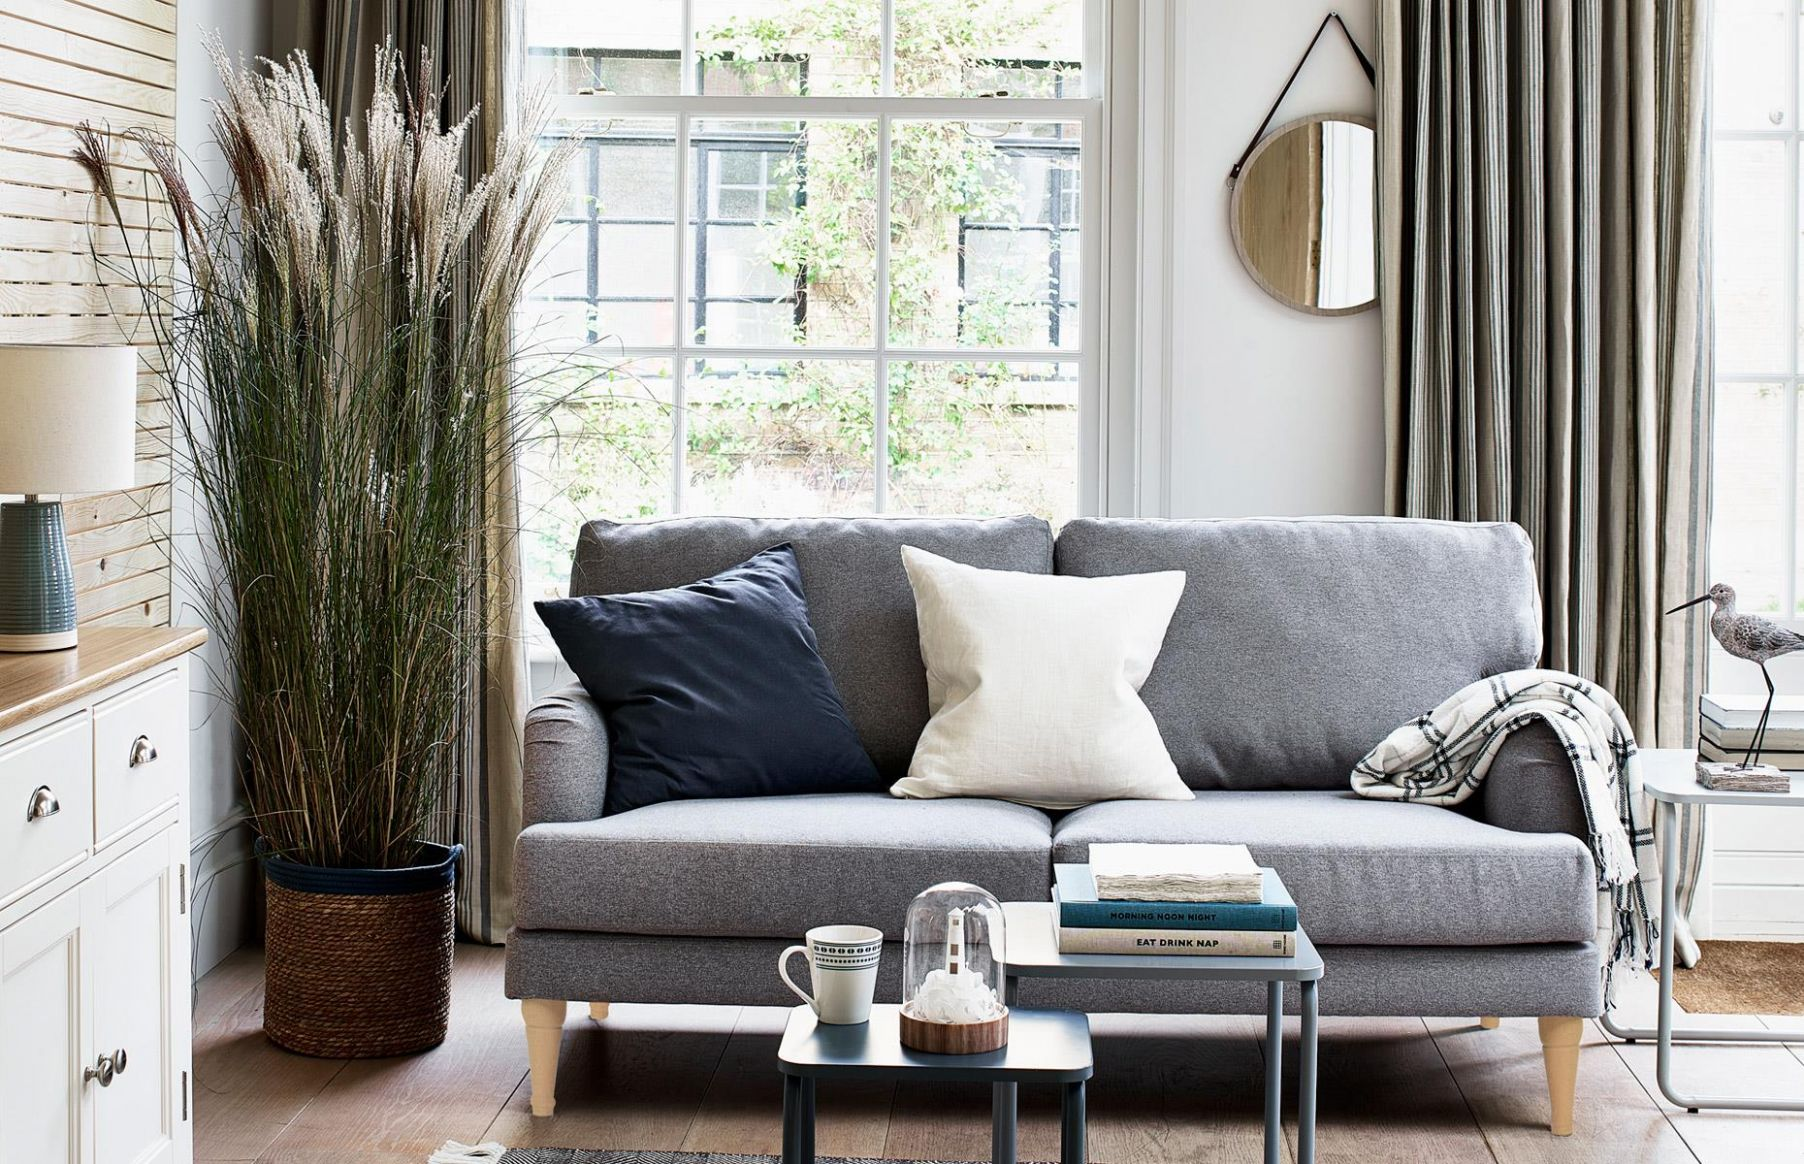 Living room ideas for every style and budget | loveproperty